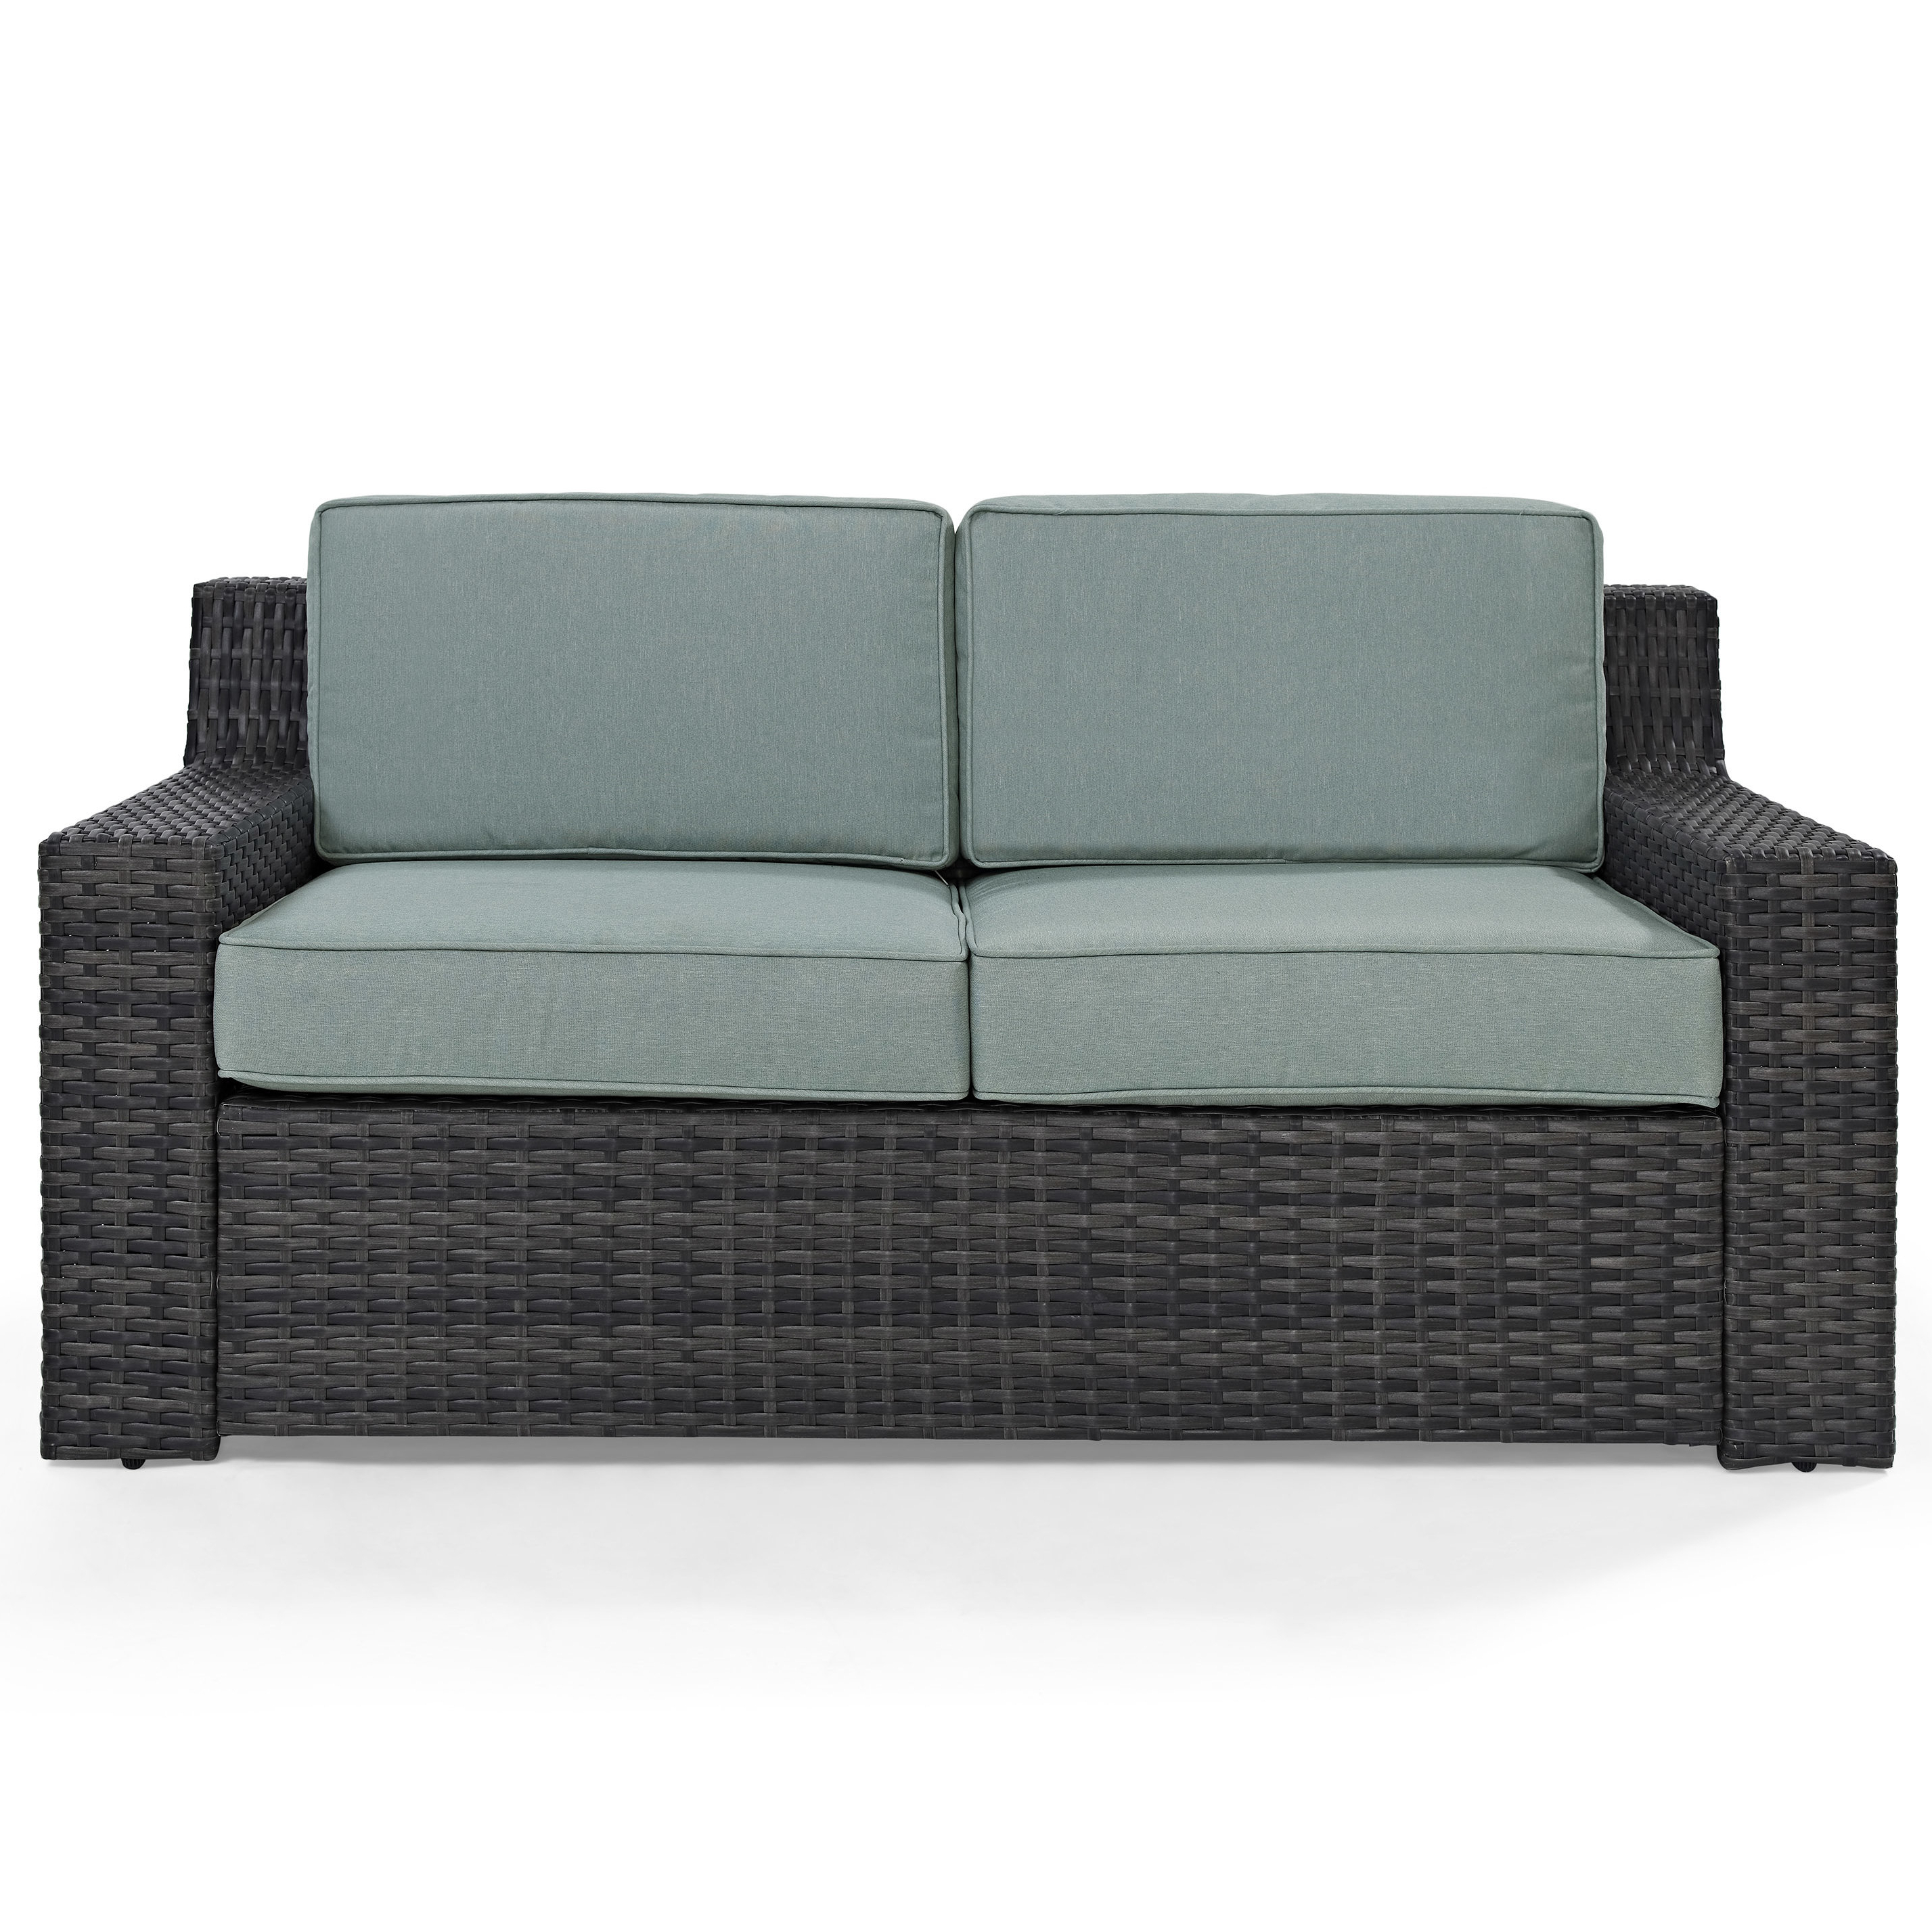 Vallauris Sofa With Cushions For Widely Used Linwood Loveseat With Cushions (View 13 of 20)